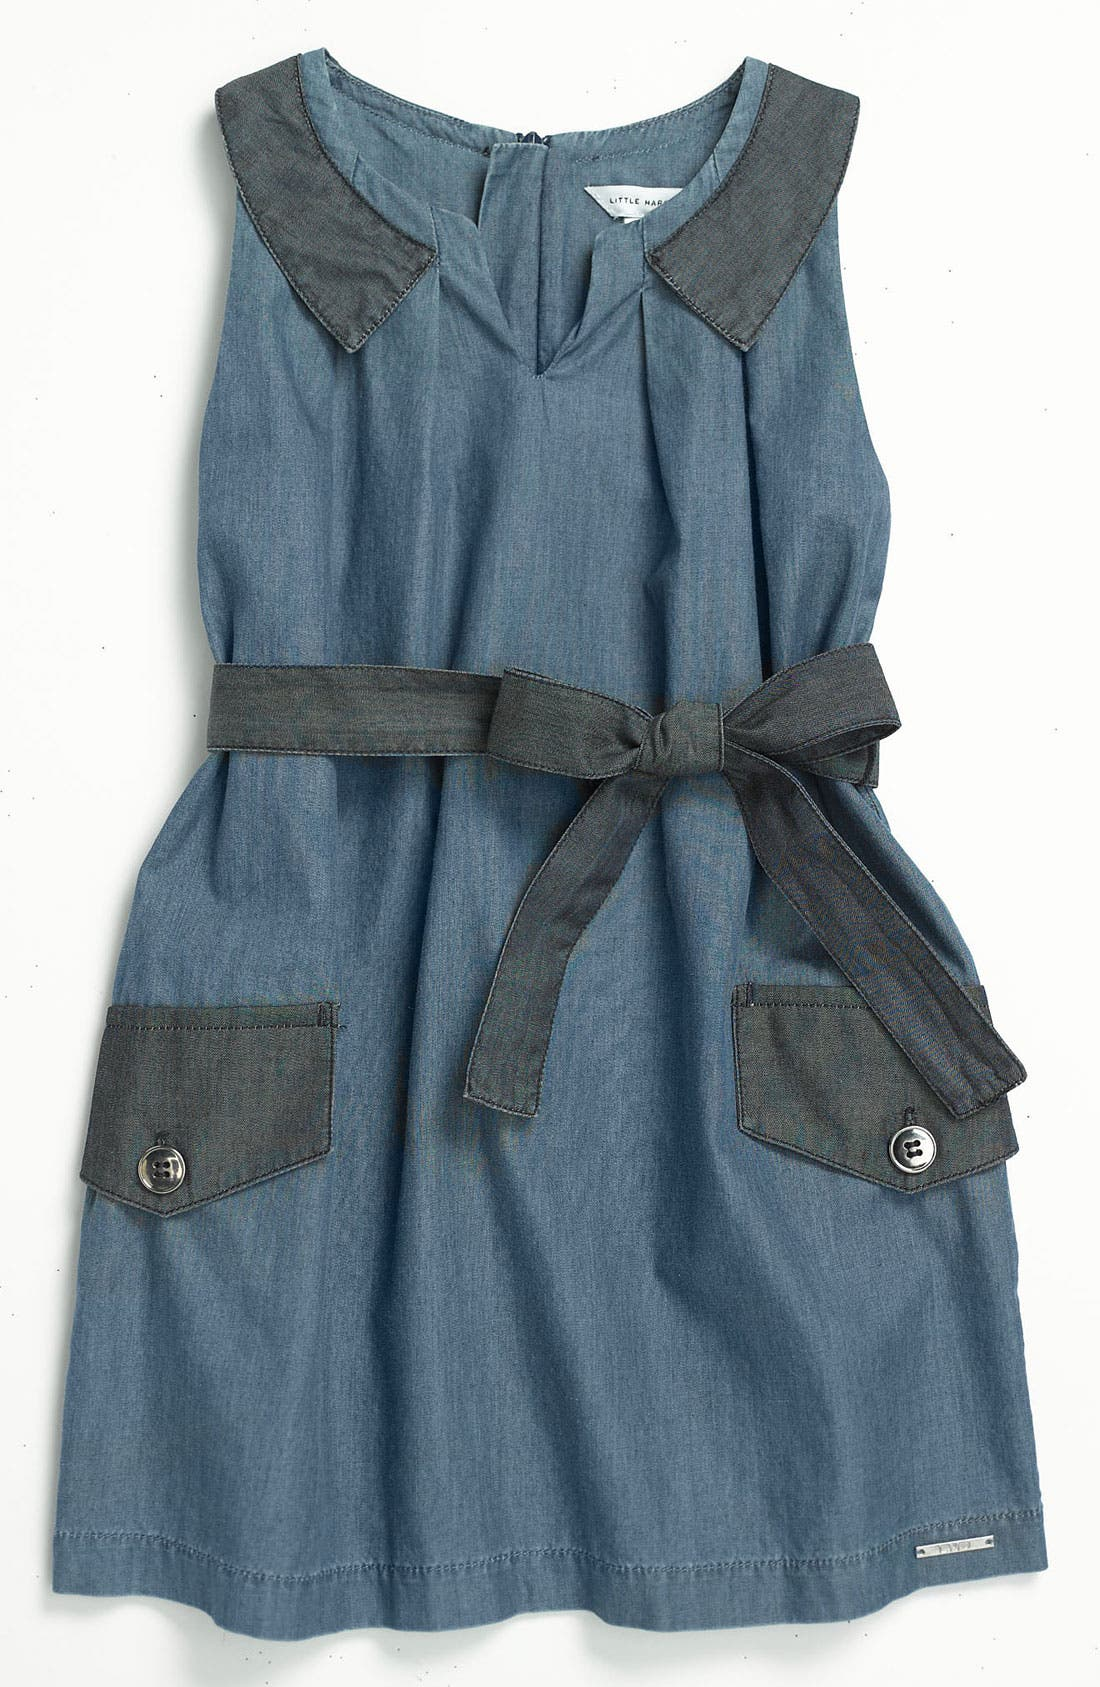 Main Image - LITTLE MARC JACOBS Sleeveless Chambray Dress (Little Girls & Big Girls)